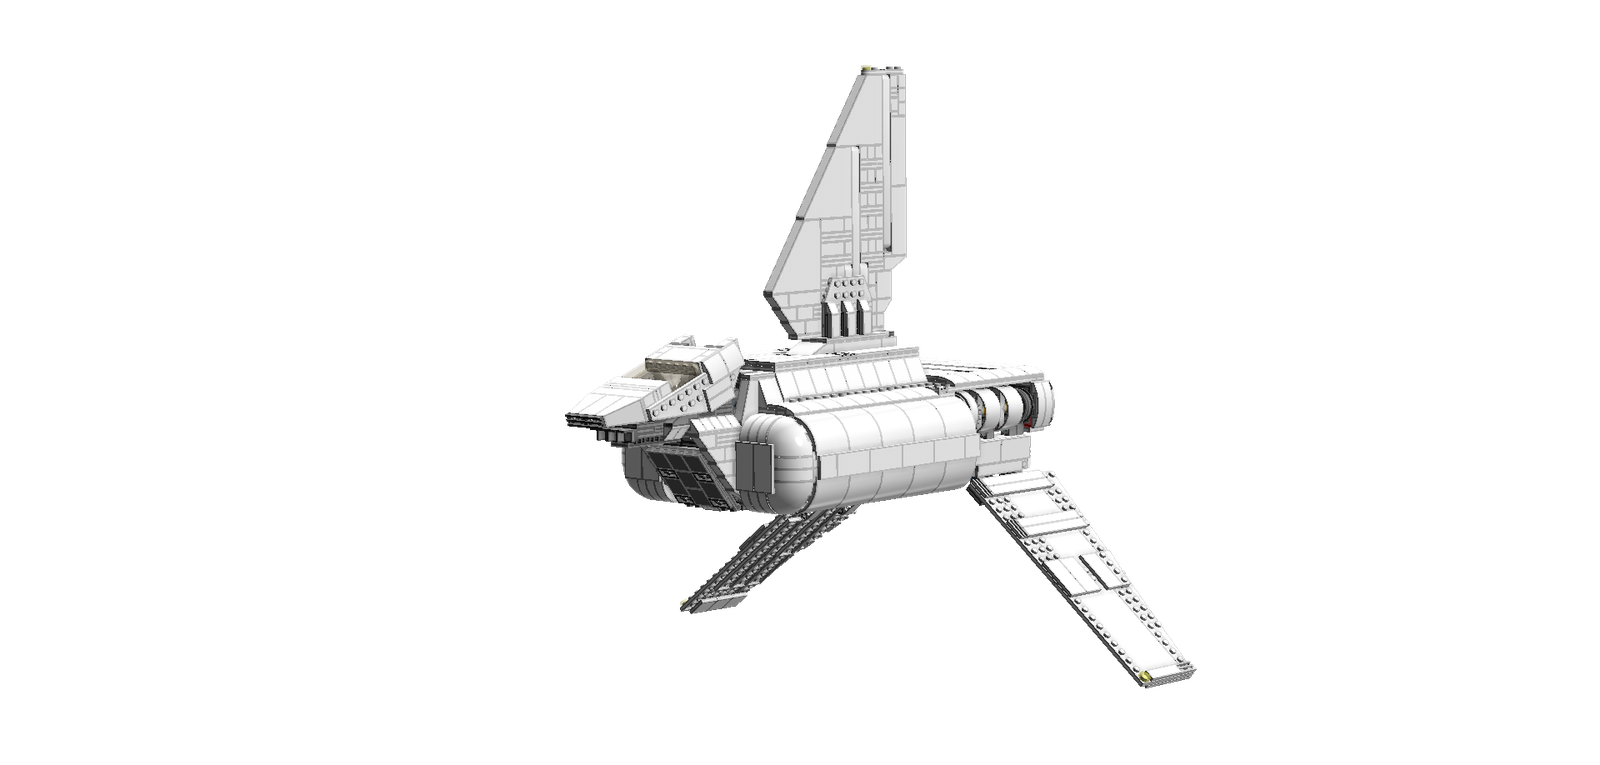 Spacecraft drawing product. Lego ideas star wars